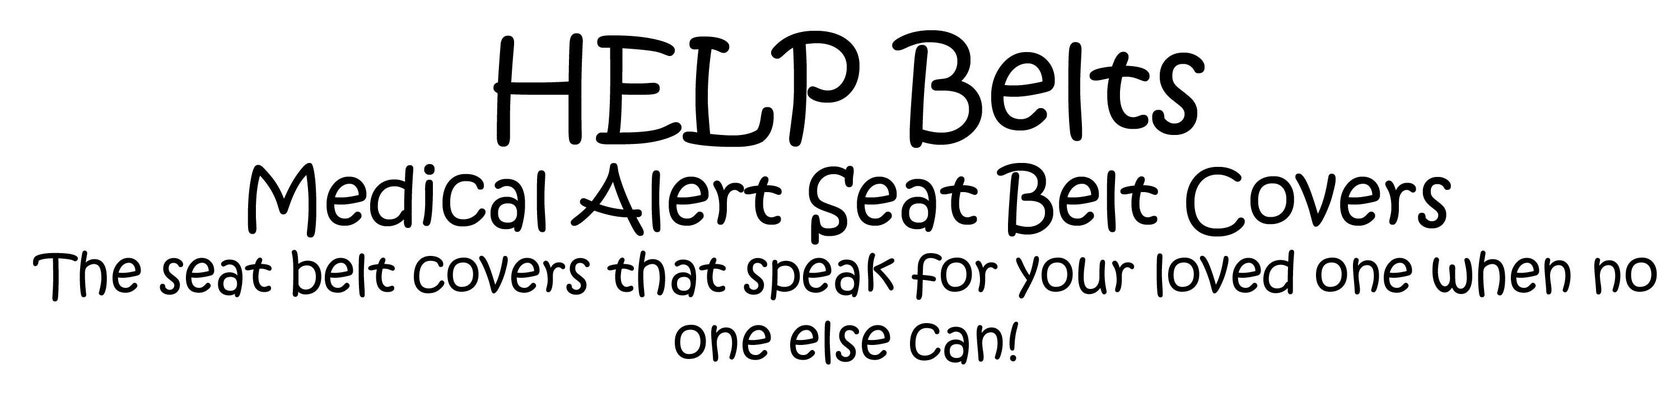 Help Belts Medical Alert Seat Belt Covers By Helpbelts On